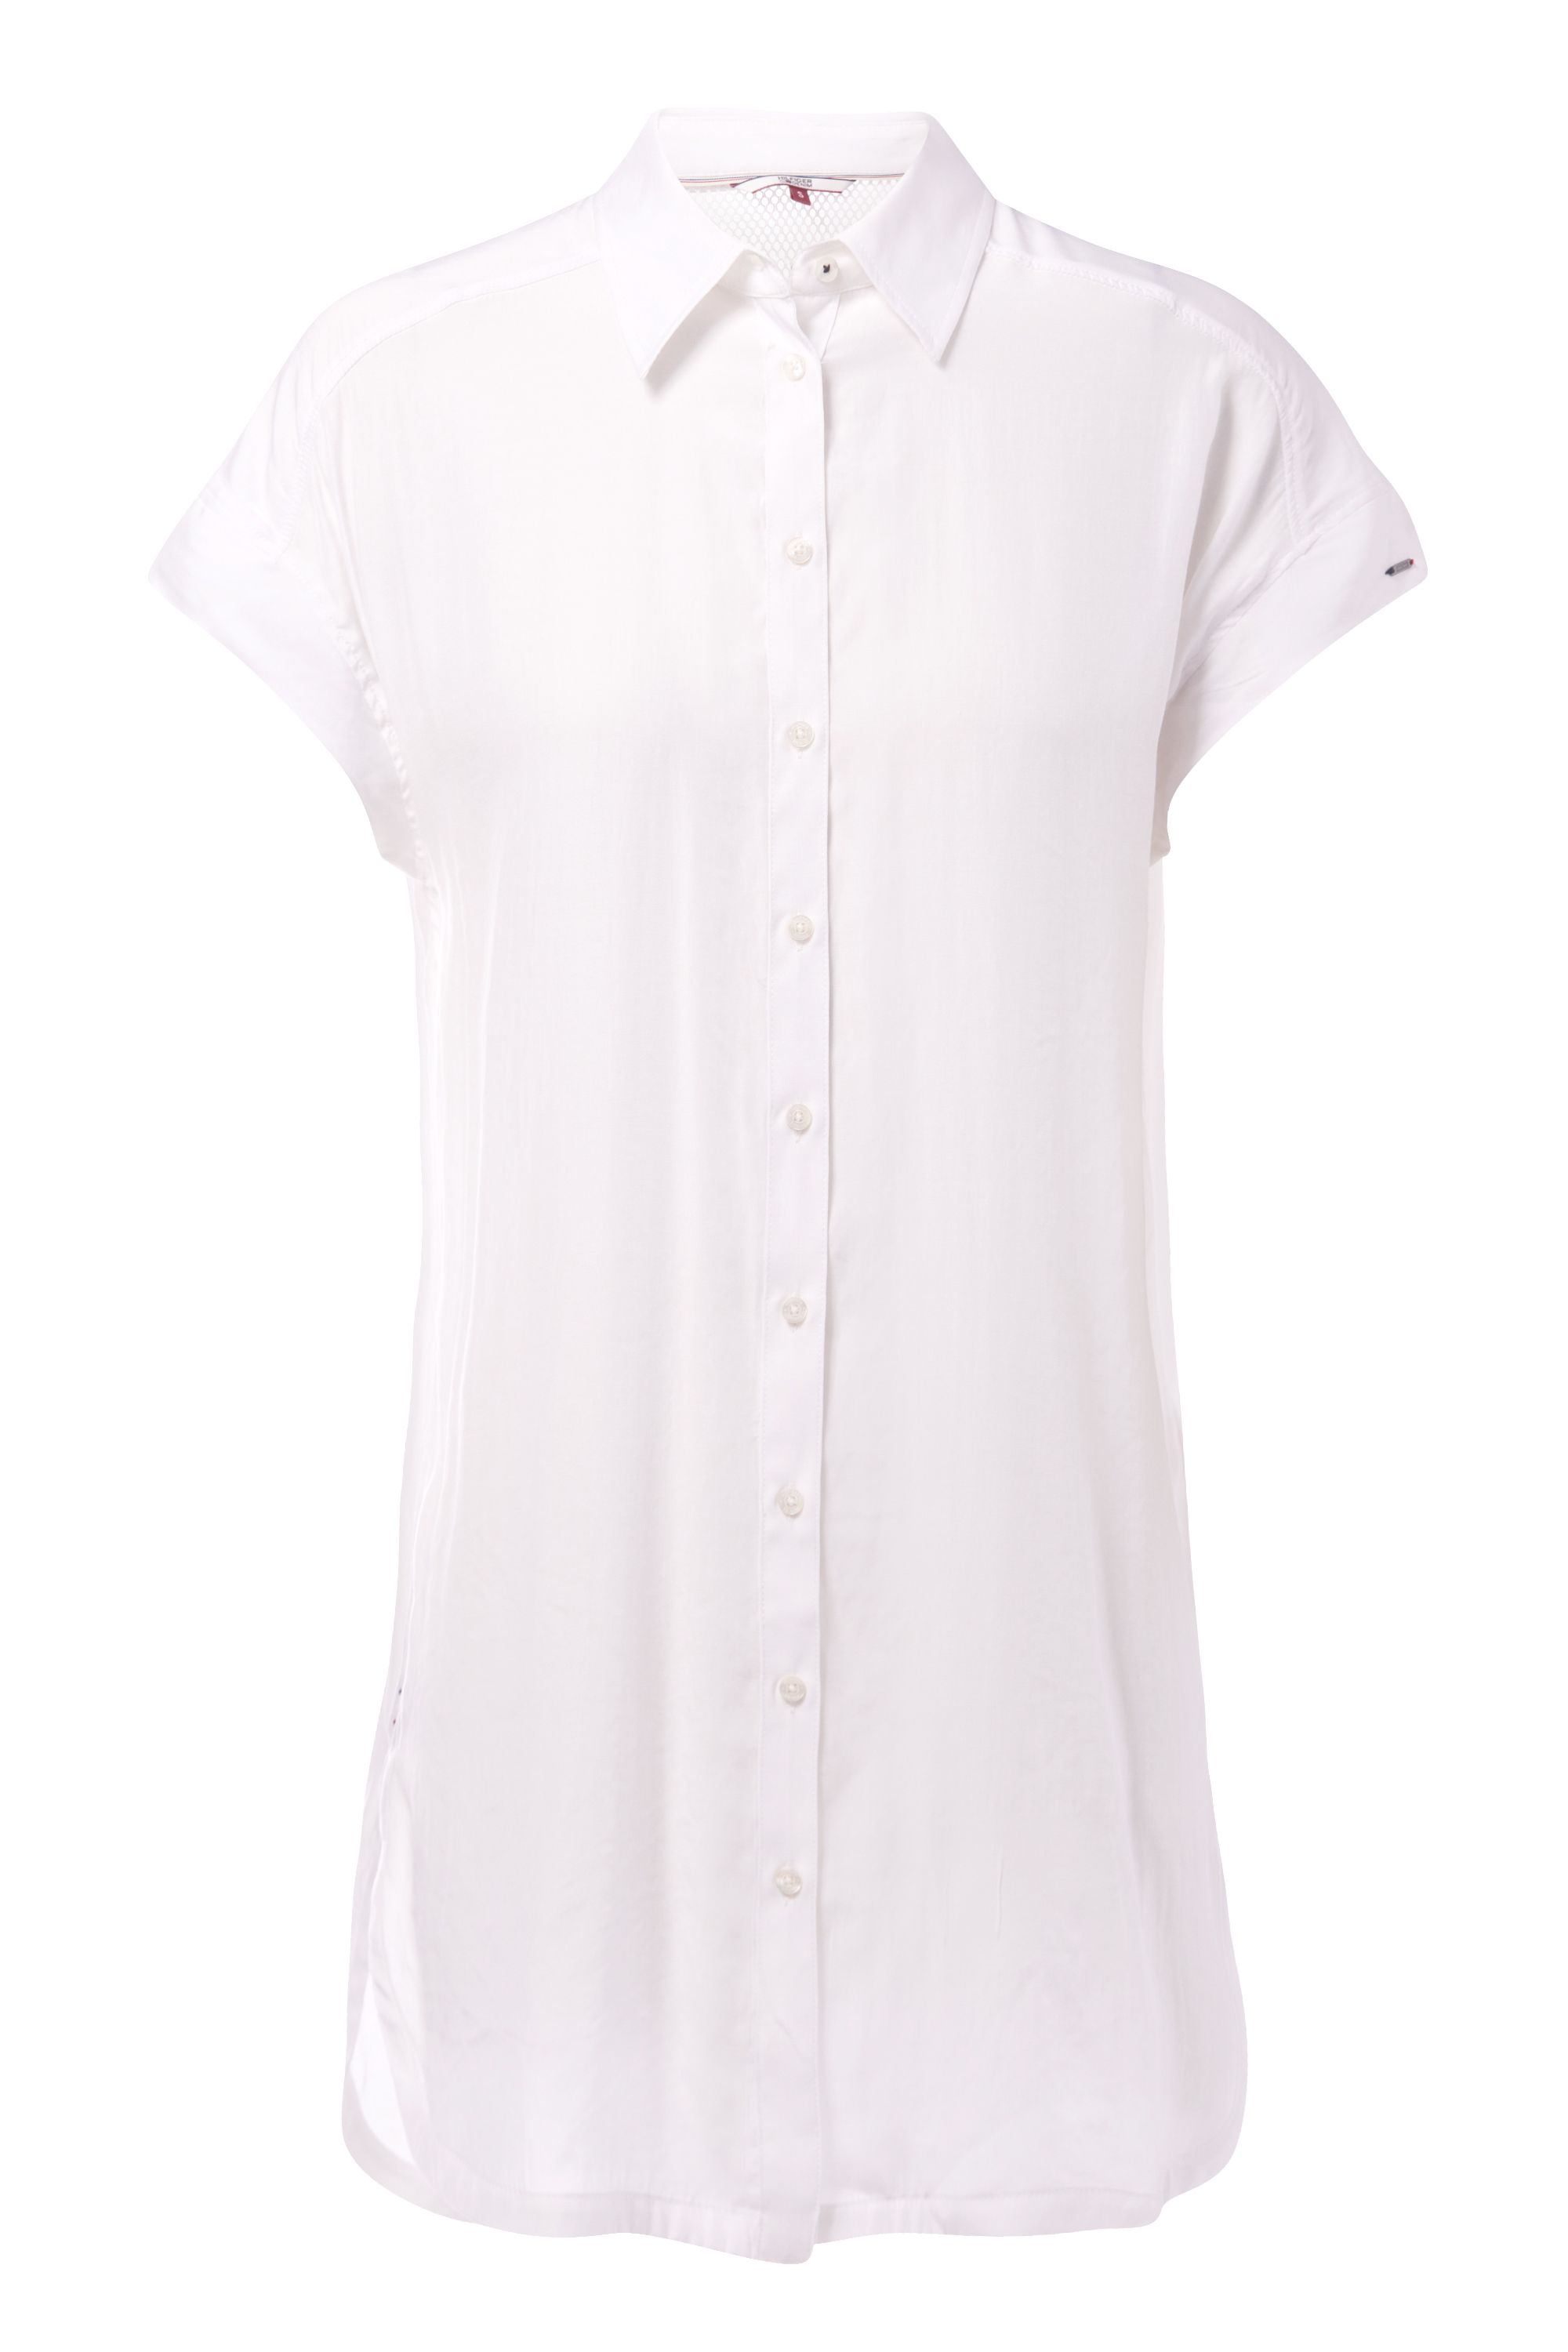 Tommy Hilfiger Mesh Long Shirt, White